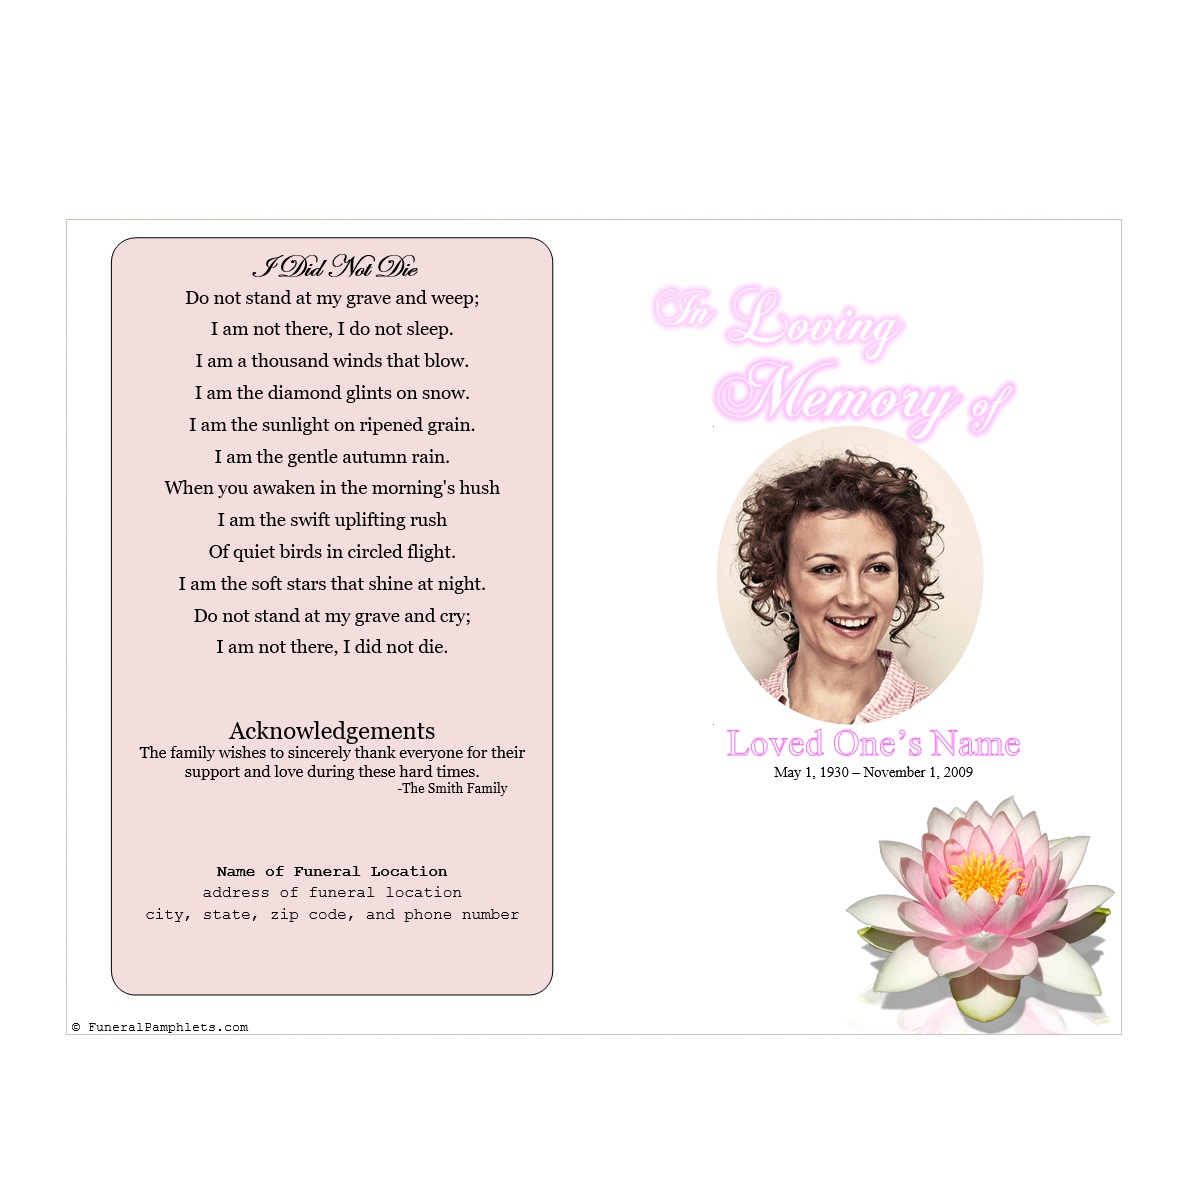 Lily Single Fold Memorial Program Funeral Pamphlets – Printable Funeral Program Templates